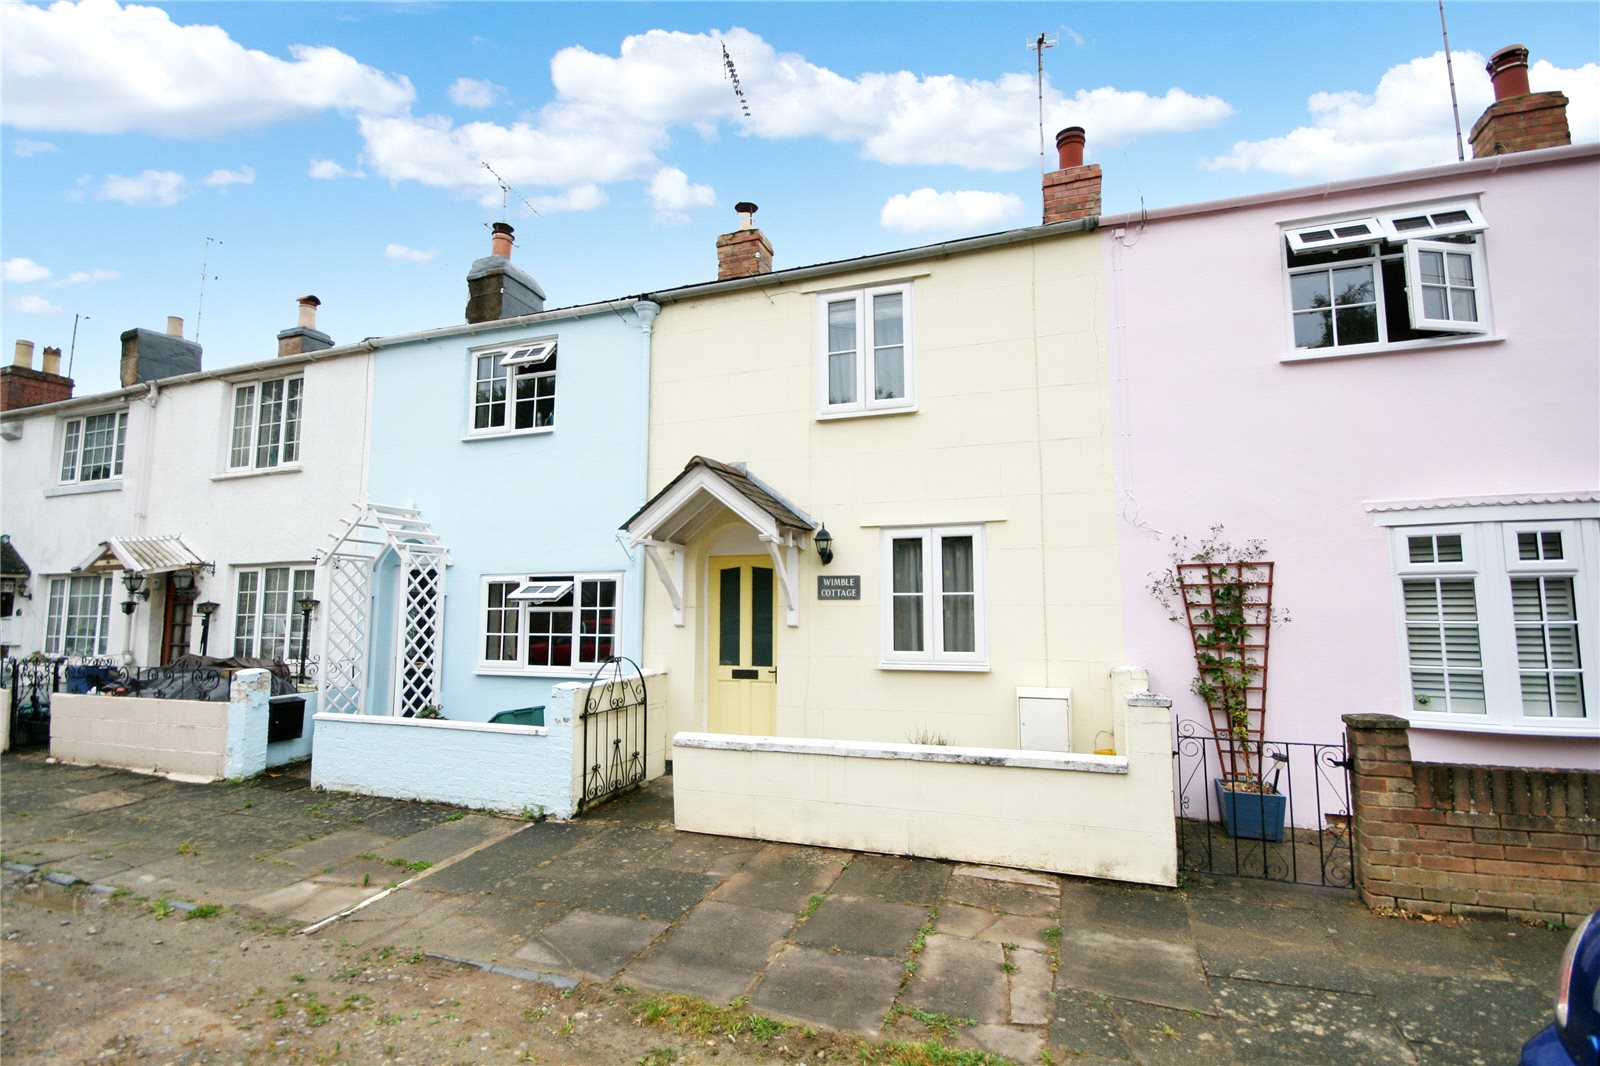 2 Bedrooms Property for sale in Clare Place Leckhampton Cheltenham GL53